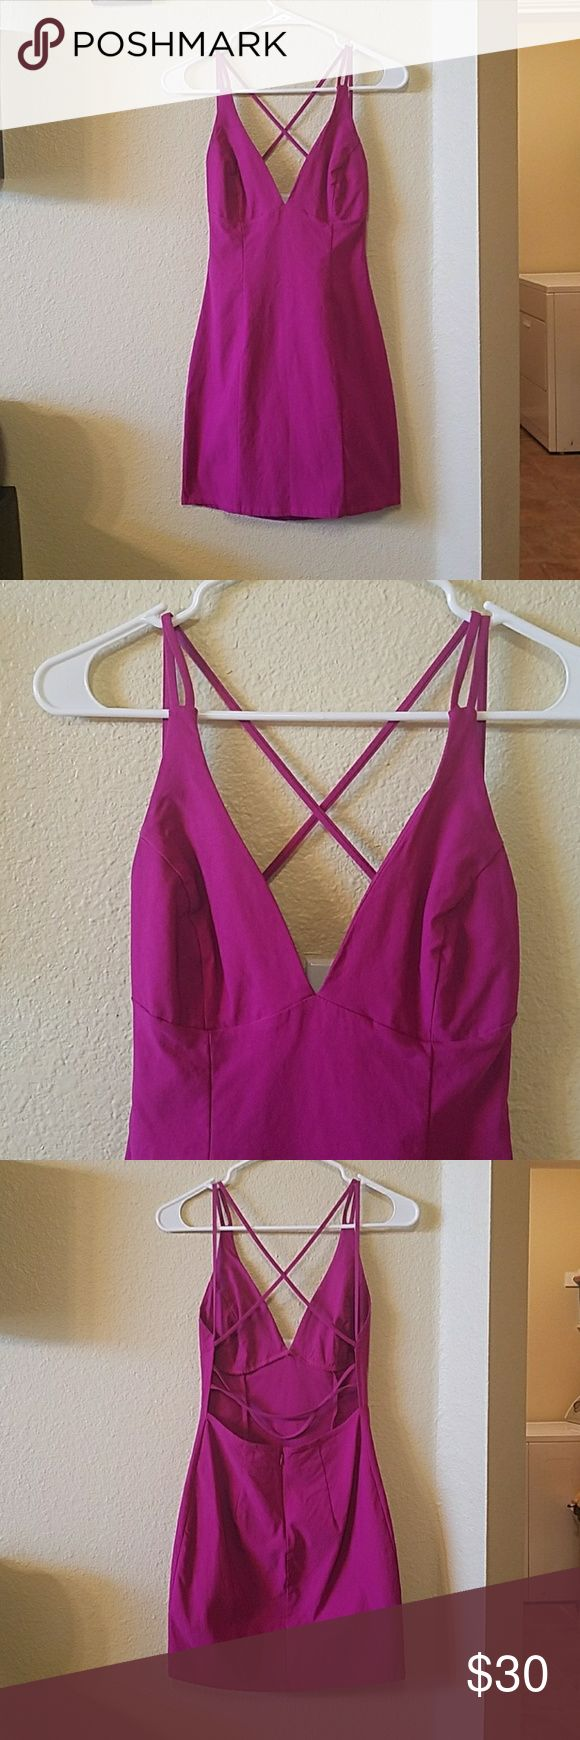 Magenta/purple dress. Criss cross low back, low v front. Very form fitting stretchy material. Perfect condition, purchased from another posher and ended up not wearing for event. Gorgeous dress for a night out! Dresses